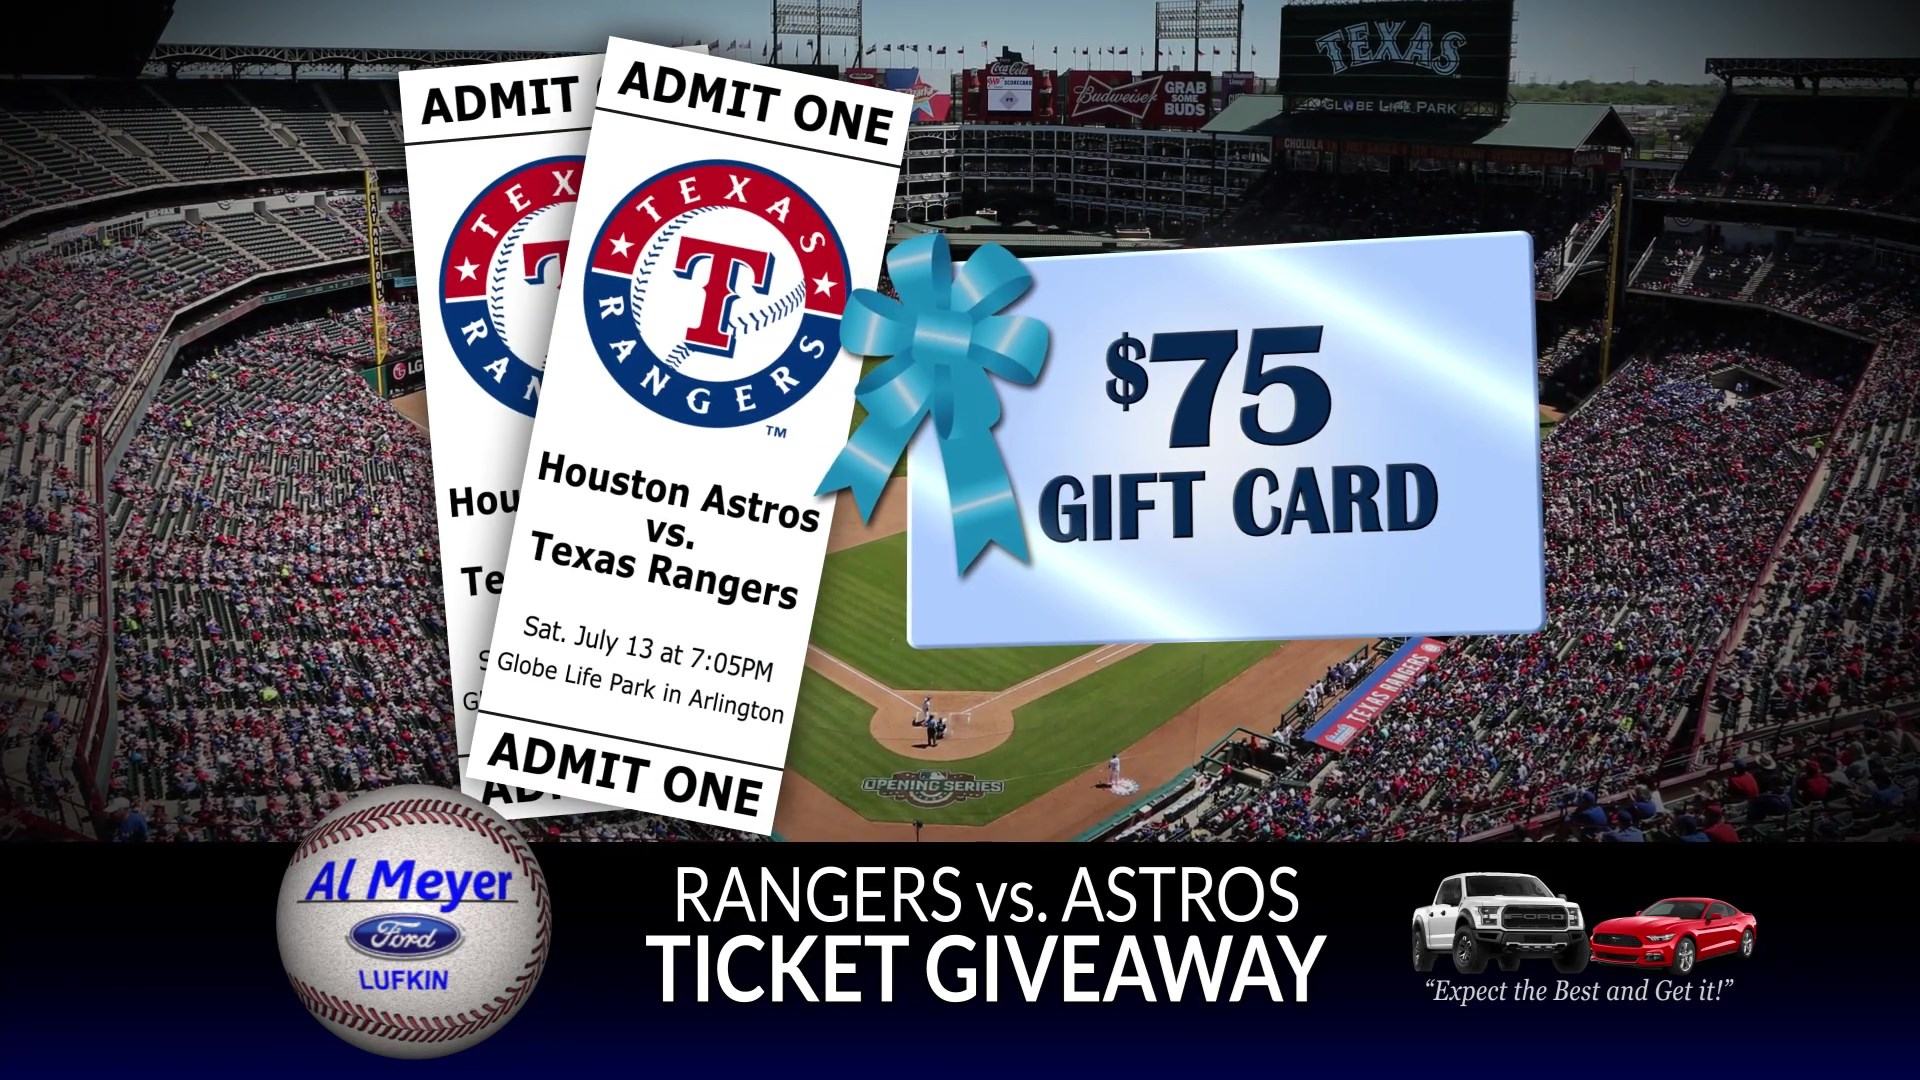 astros-rangers-ticket-giveaway-2019